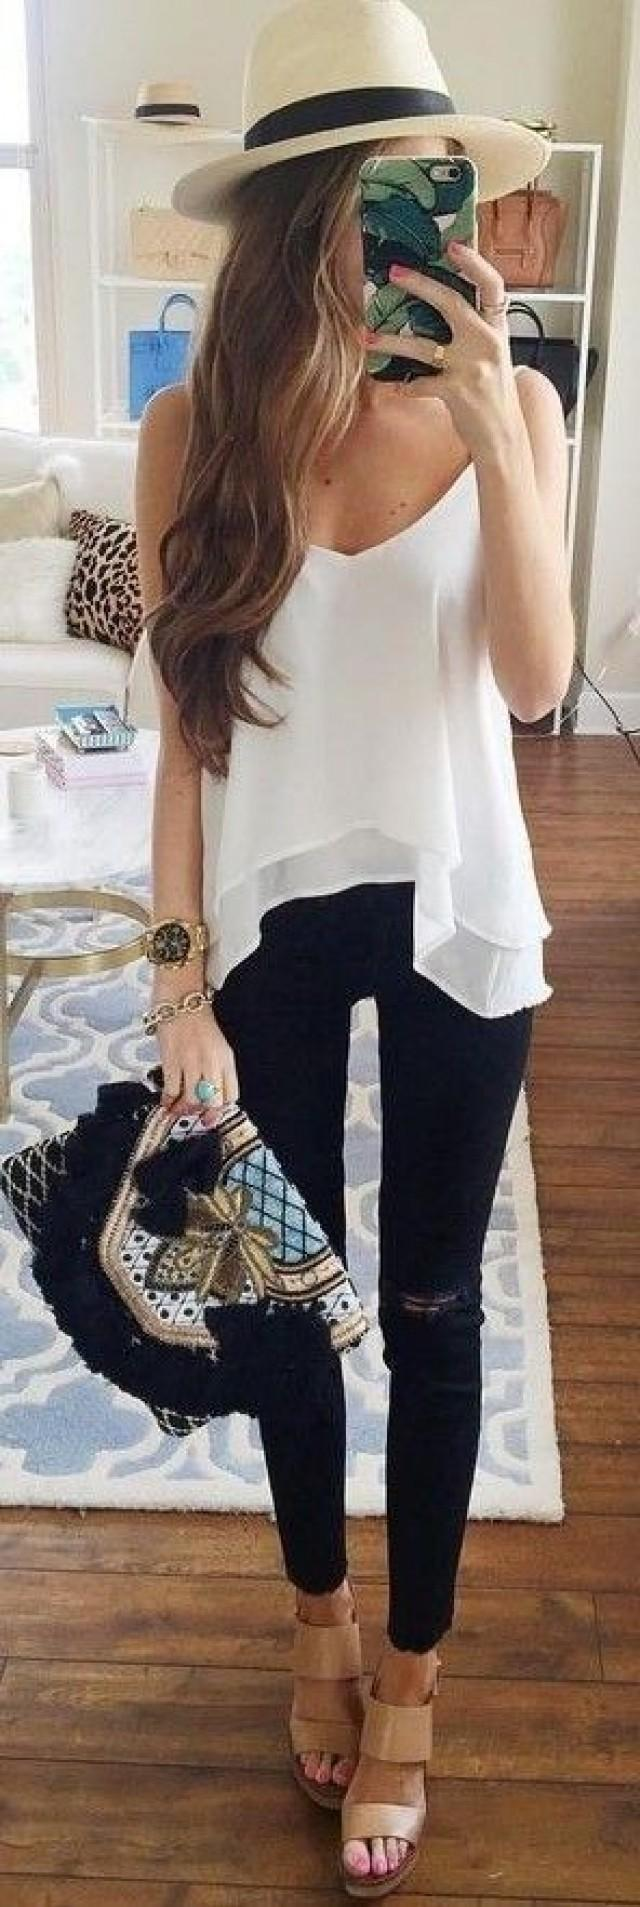 30f3bcfec970b 50 Trending And Cutest Summer Outfits You Have To Earn #2726340 - Weddbook